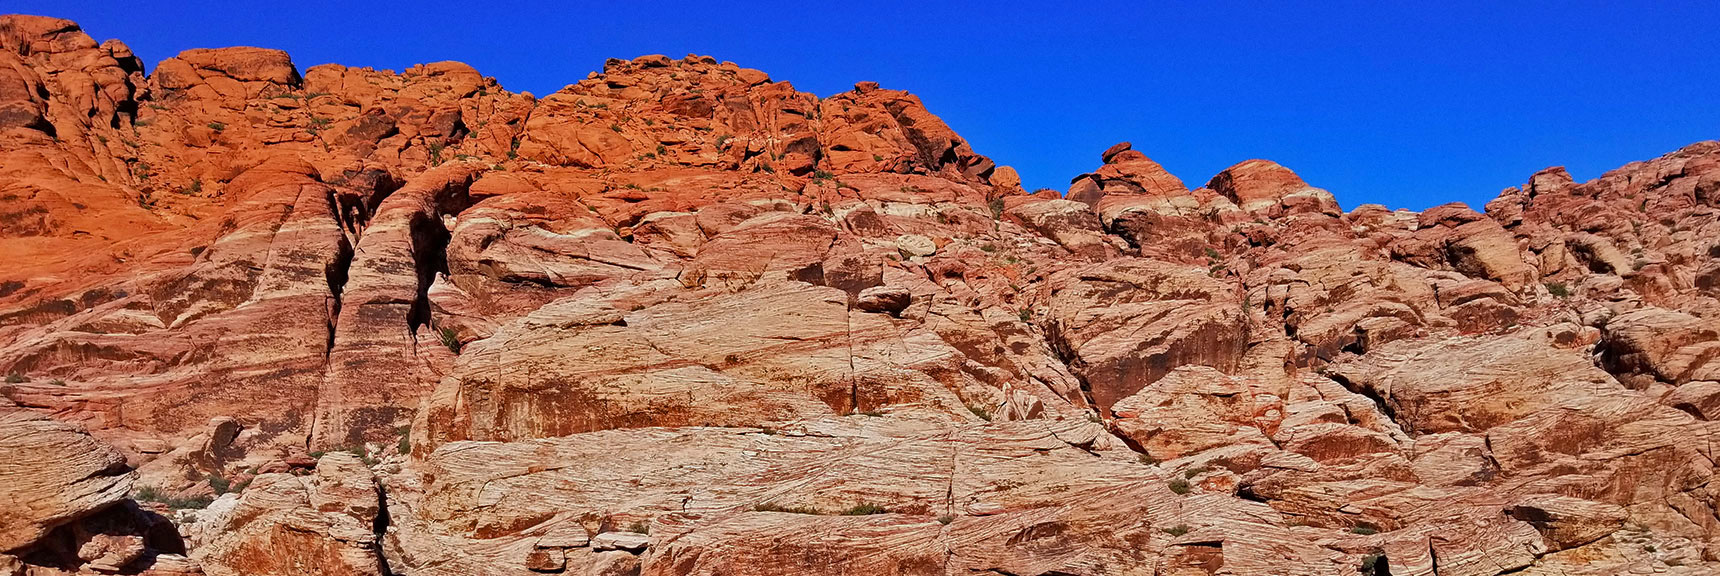 Red Rock National Park View of Calico Hills from Scenic Drive